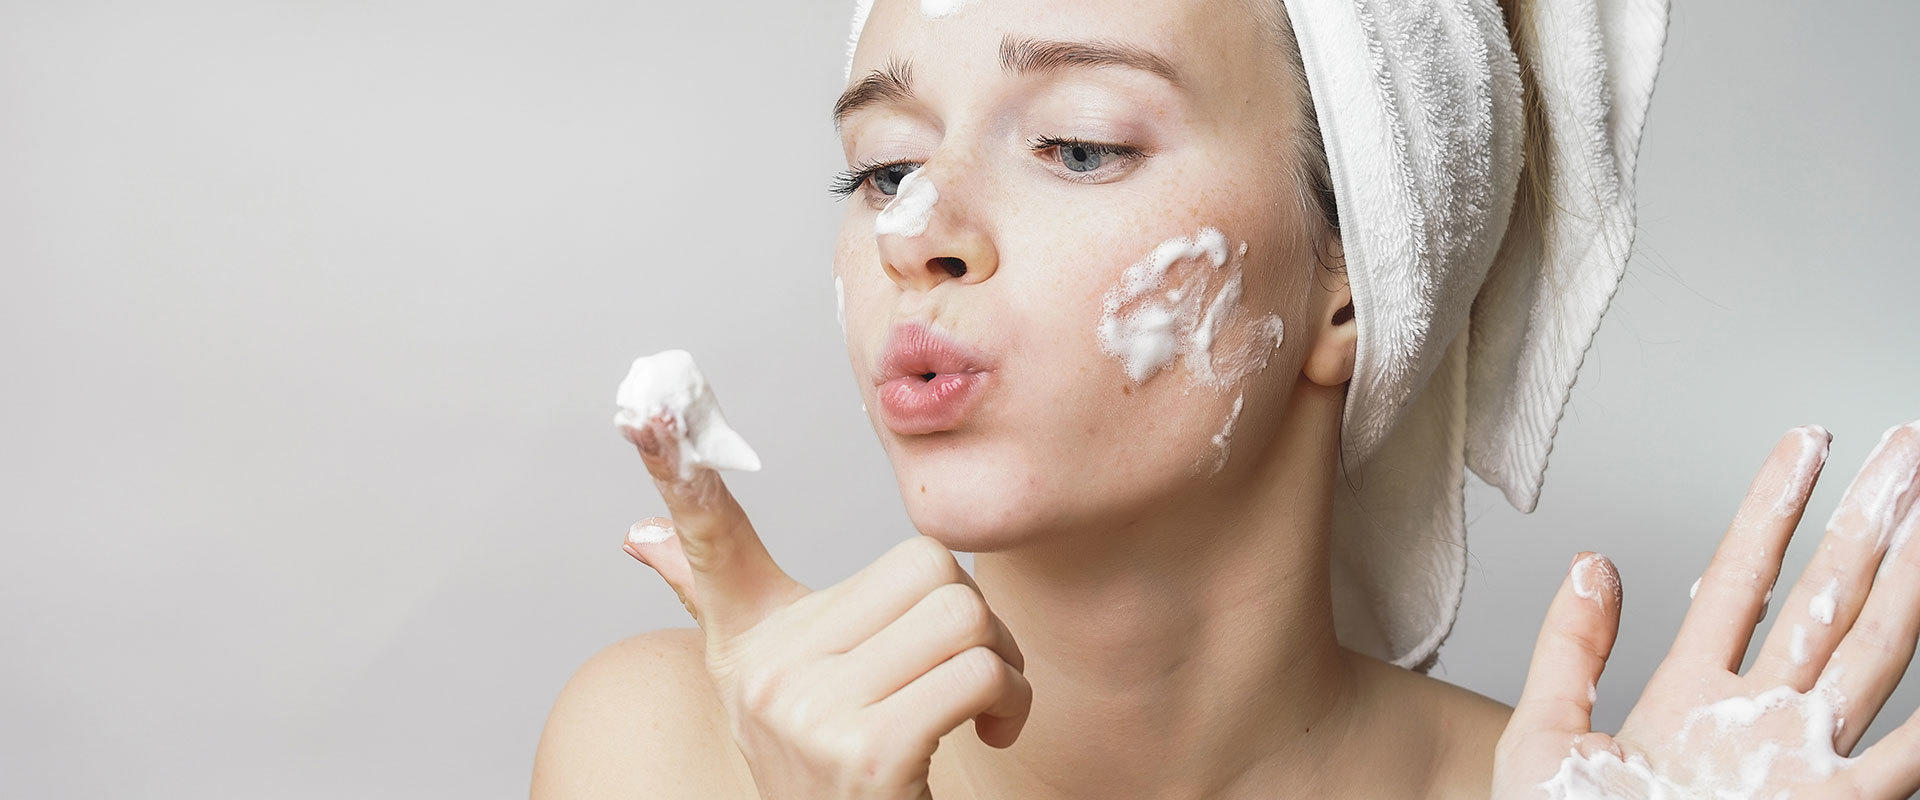 8 Home Remedies For Acne That Will Absolutely Save Your Skin